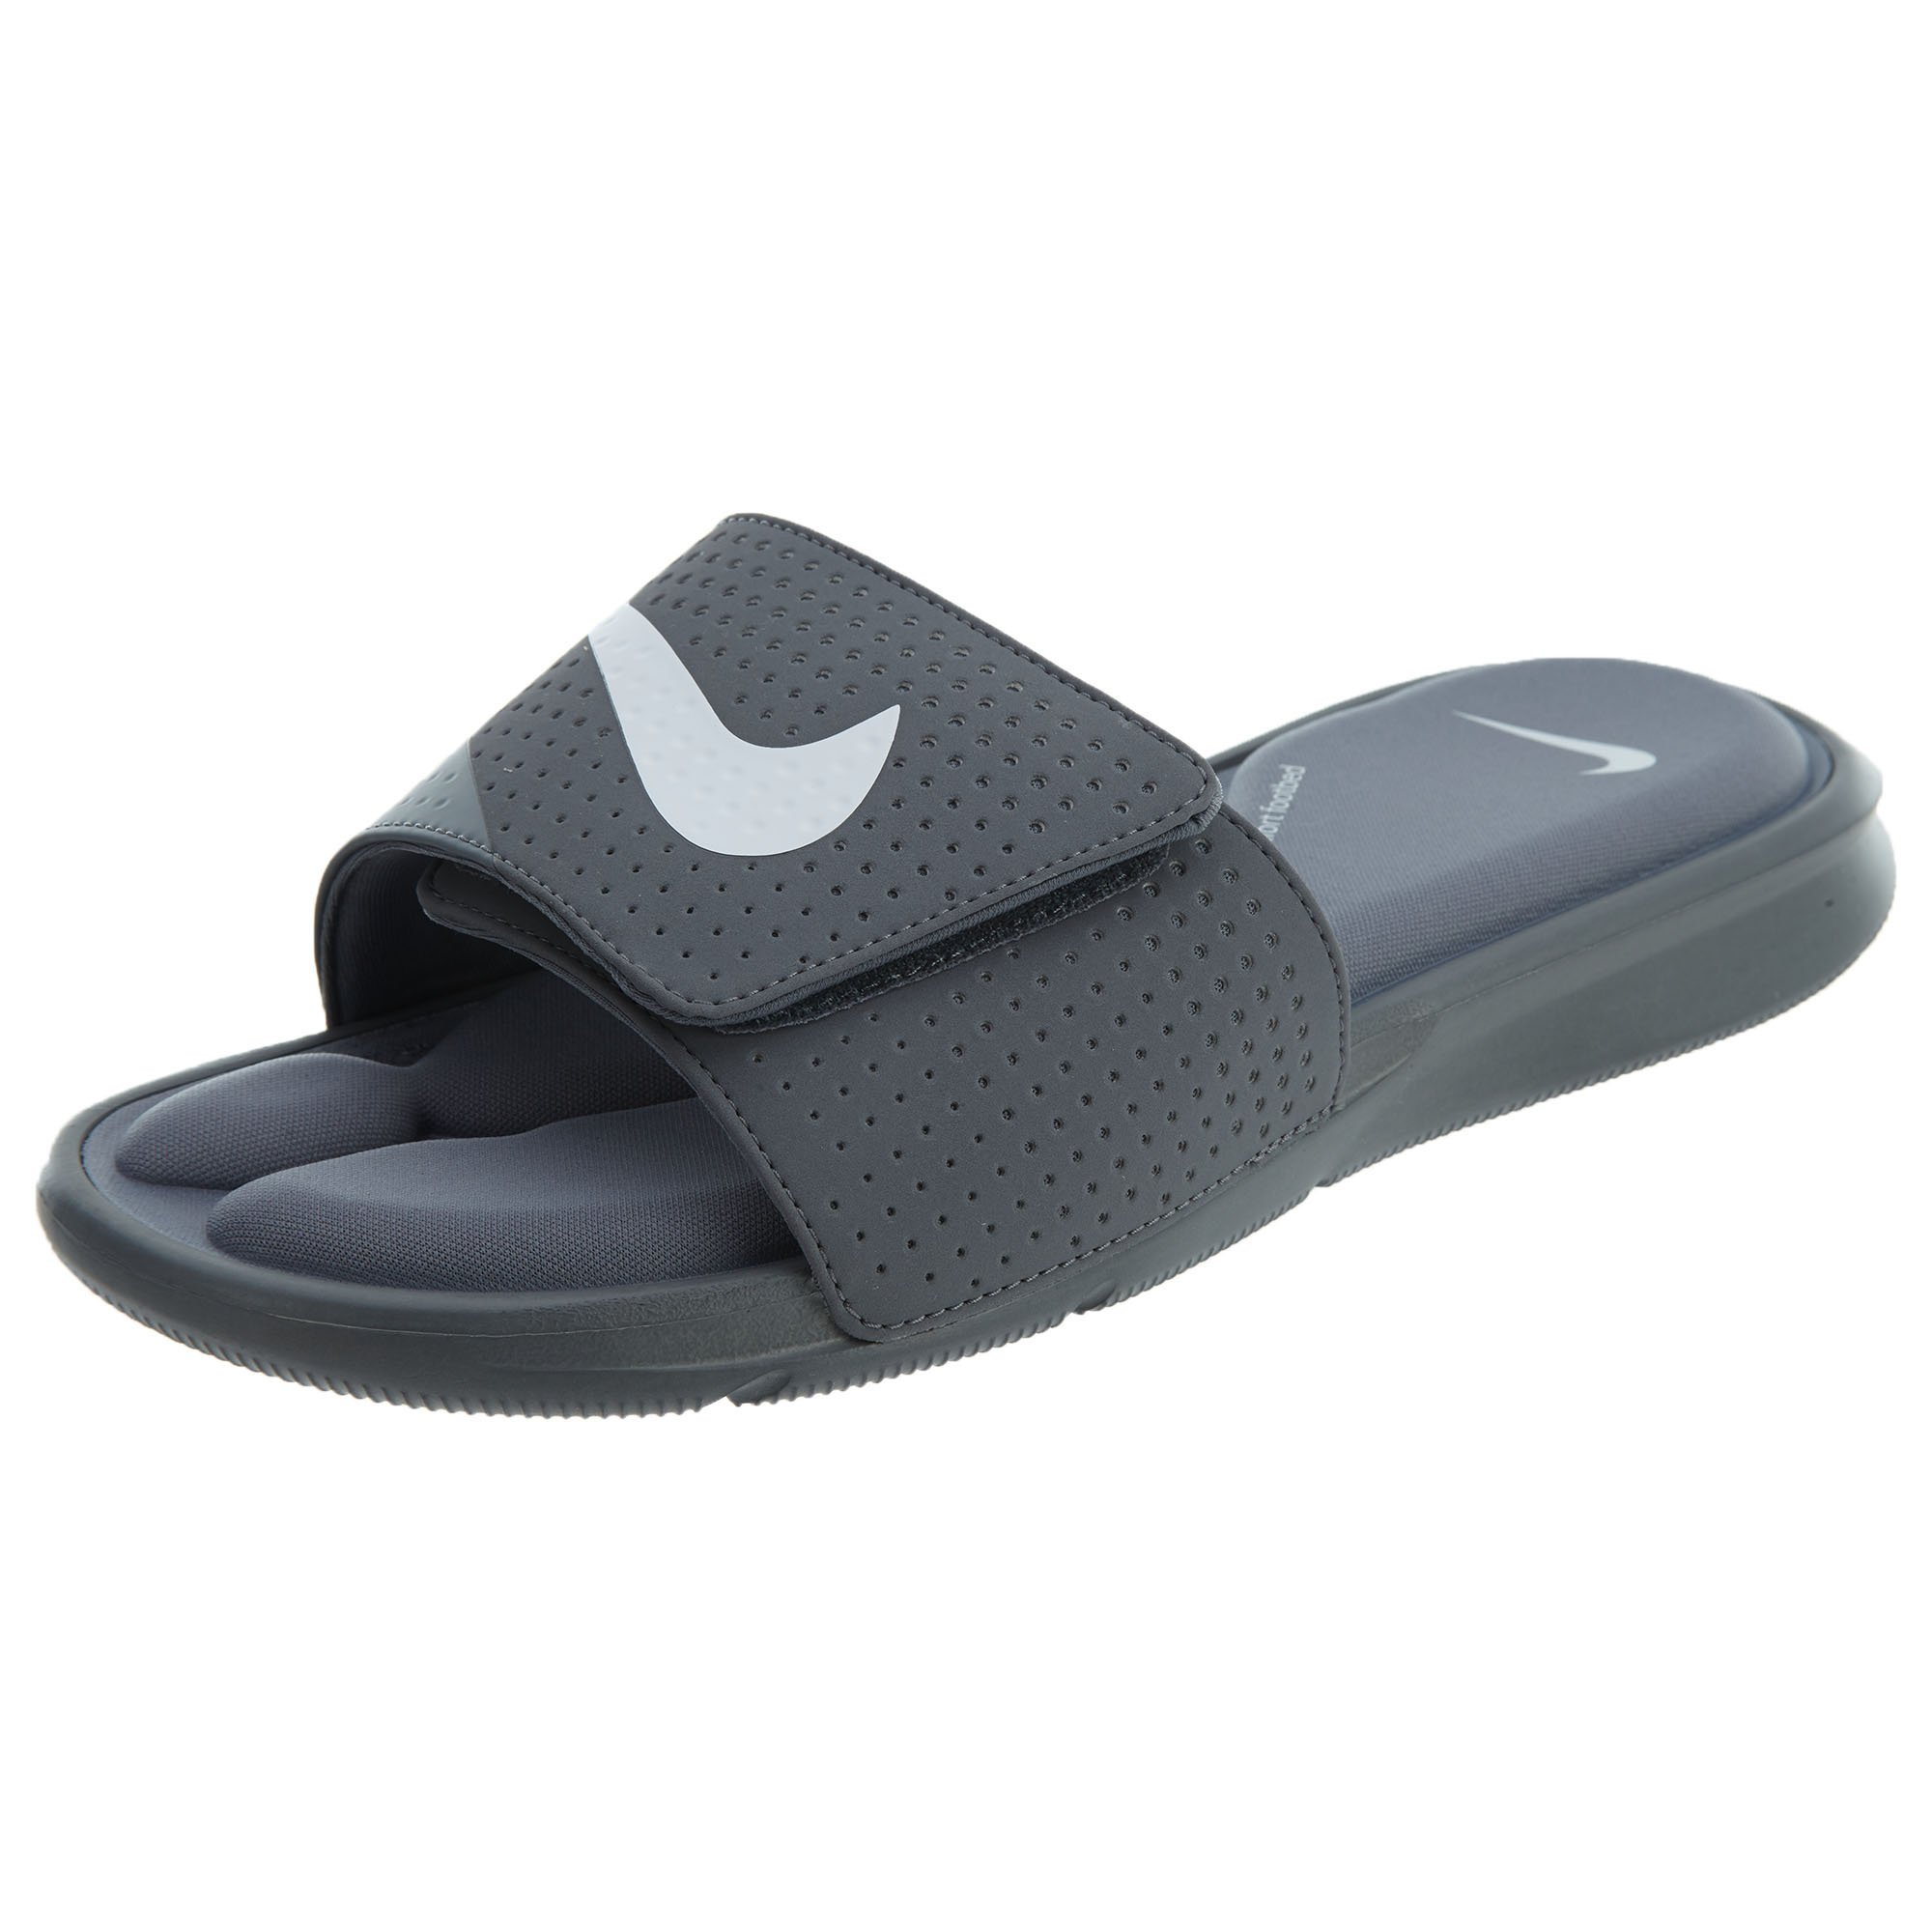 get alibaba nike comforter find on quotations deals comfort line cheap shopping at mens ultra com slide guides thong